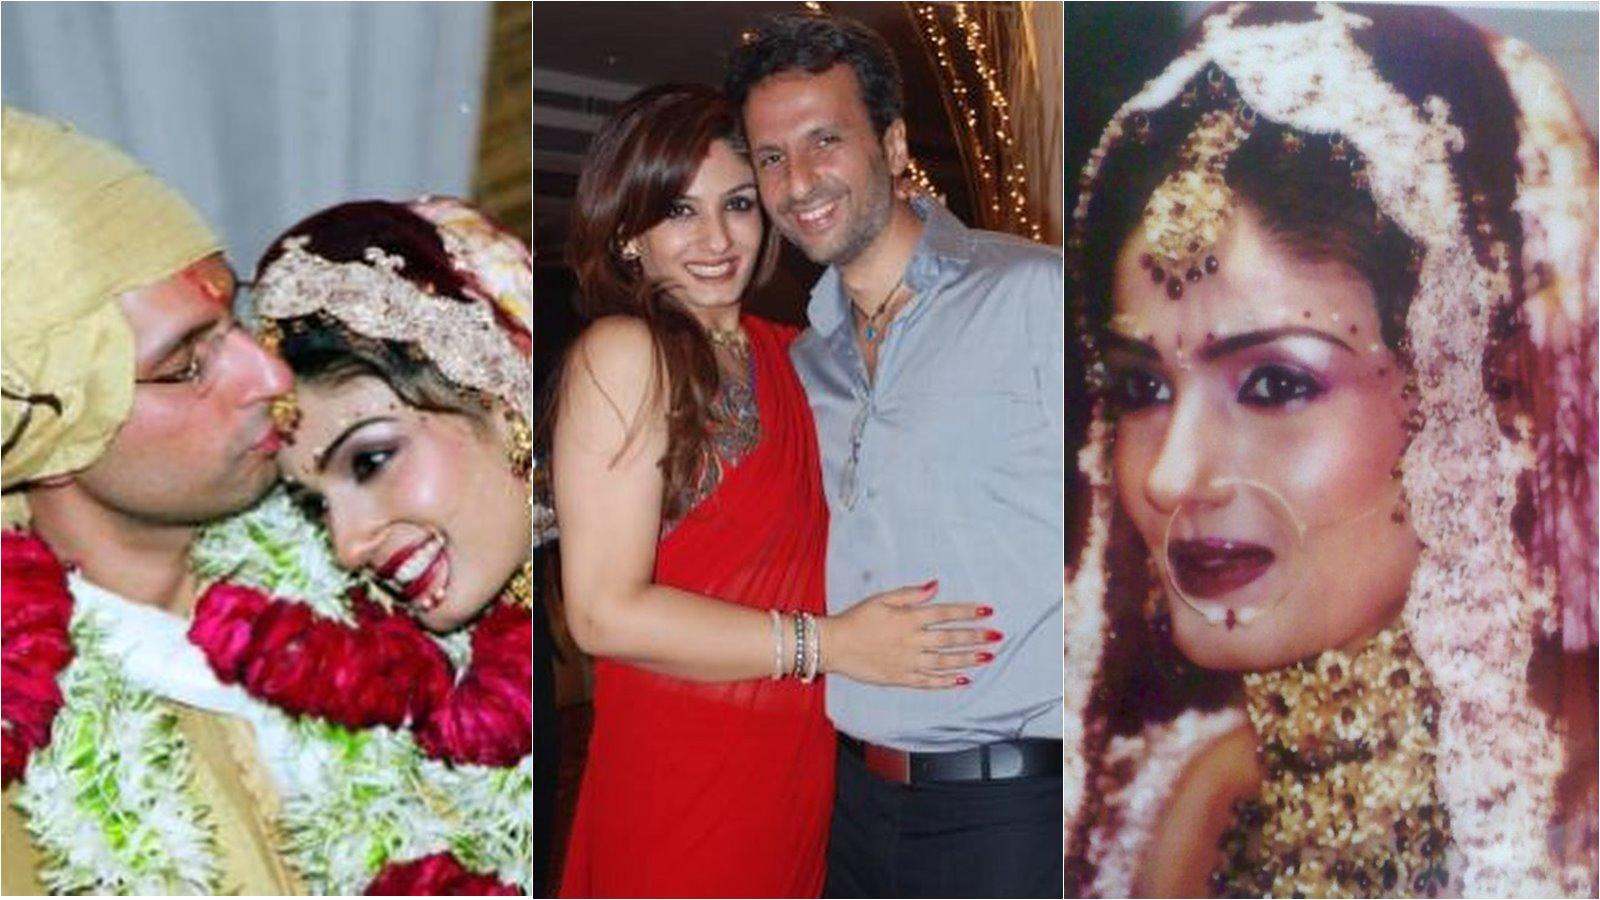 Raveena Tandon shares unseen wedding photos, pens lovely message for hubby Anil Thadani on 15th anniversary | Hindi Movie News - Bollywood - Times of India